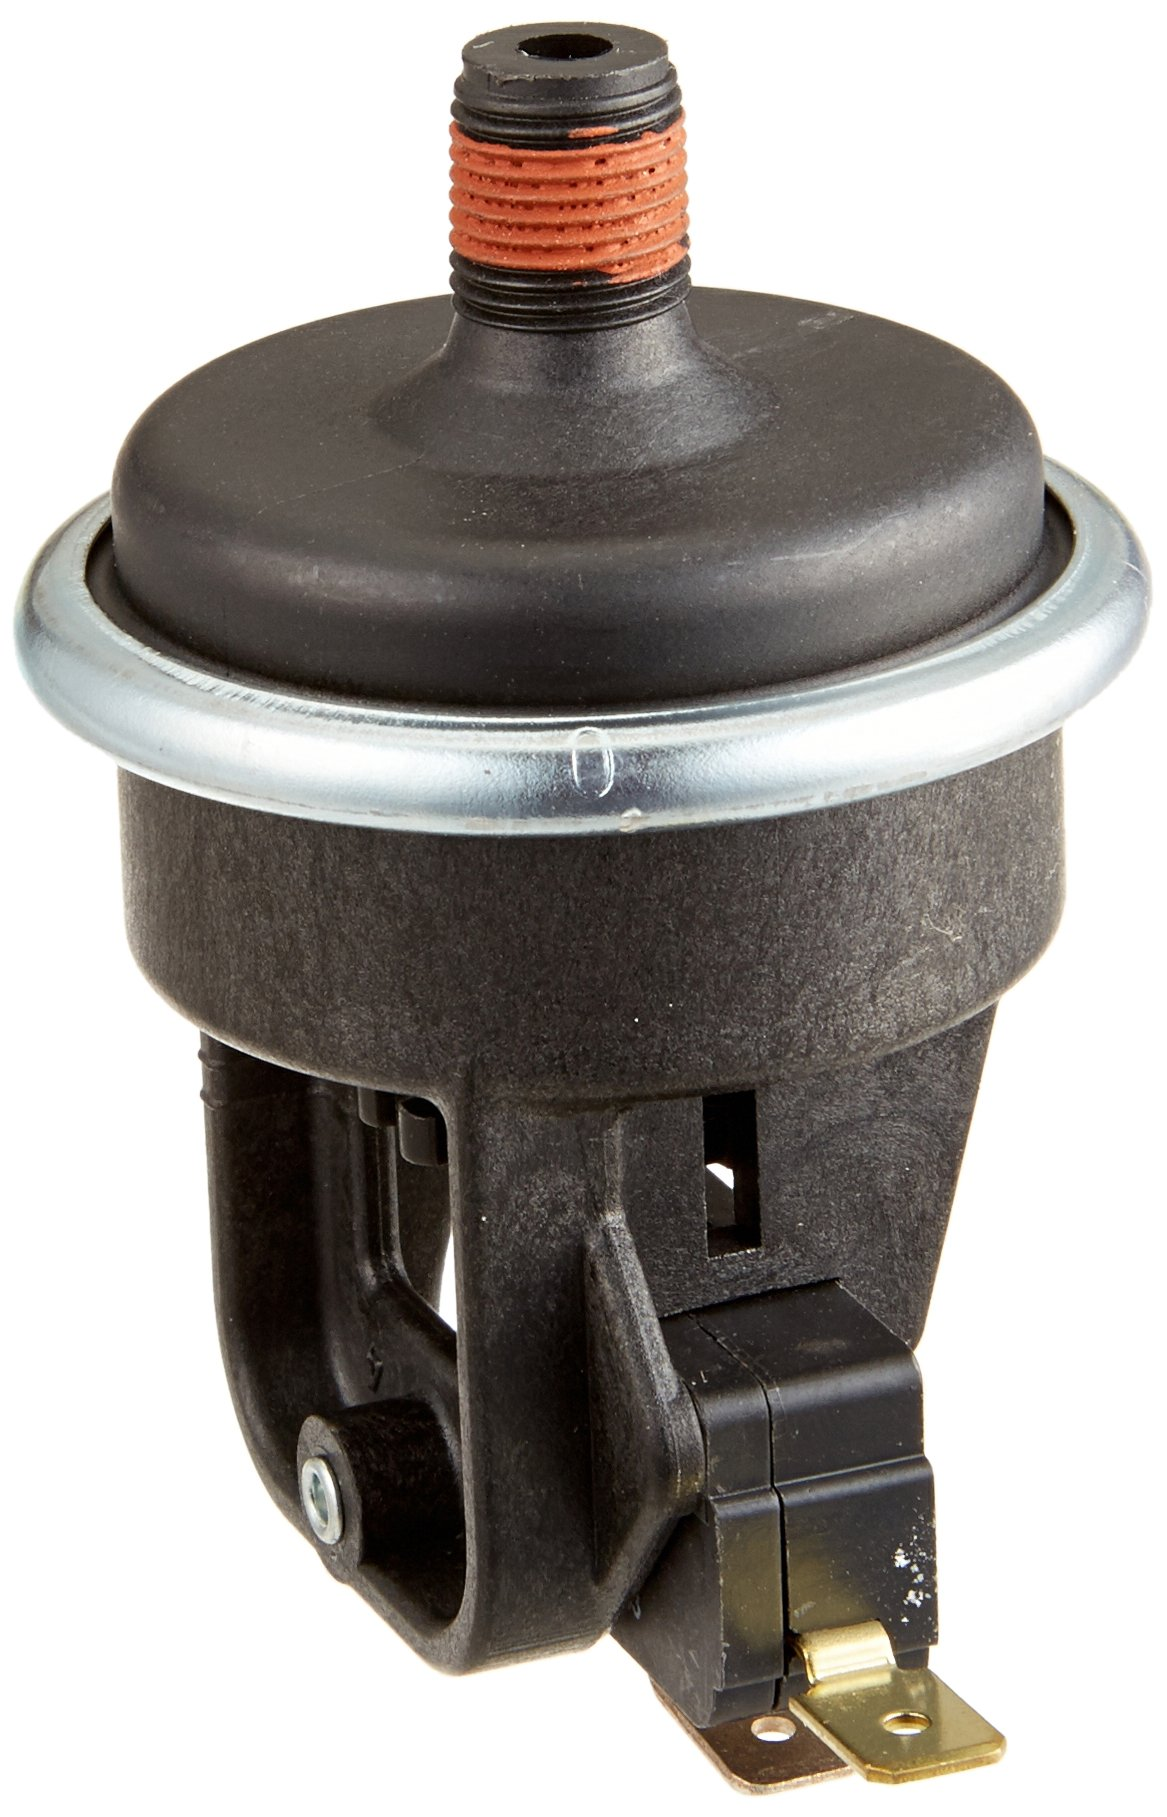 Pentair 42001-0060S Water Pressure Switch Replacement both MasterTemp and Max-E-Therm Pool and Spa Heaters by Pentair